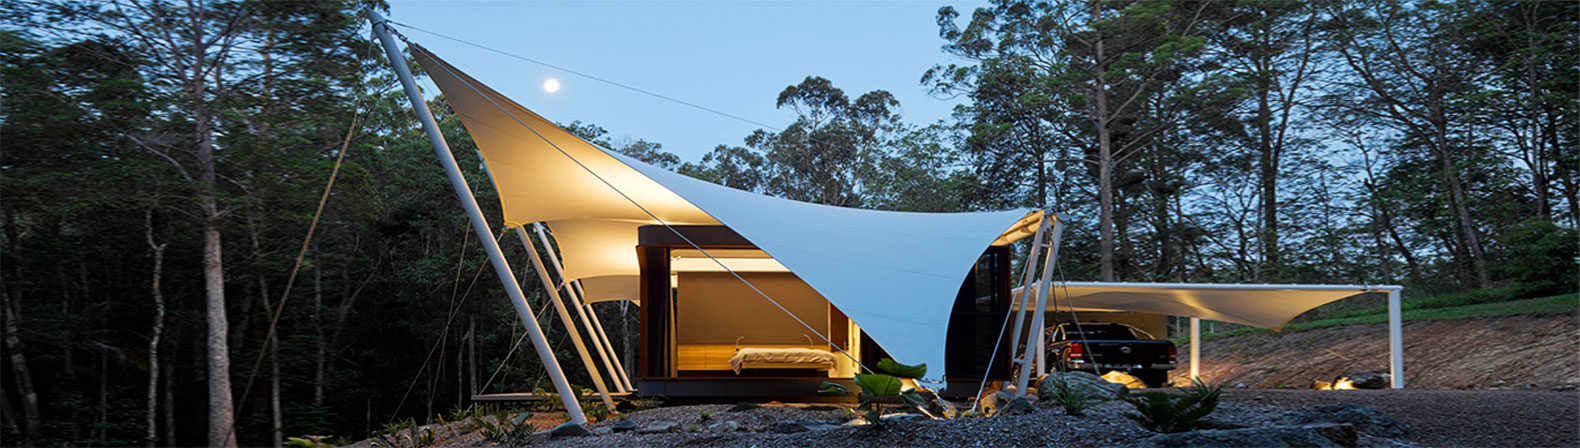 Shapeshifting tent house in australia blurs the line between indoor and outdoor spaces - Shape shifting house ...